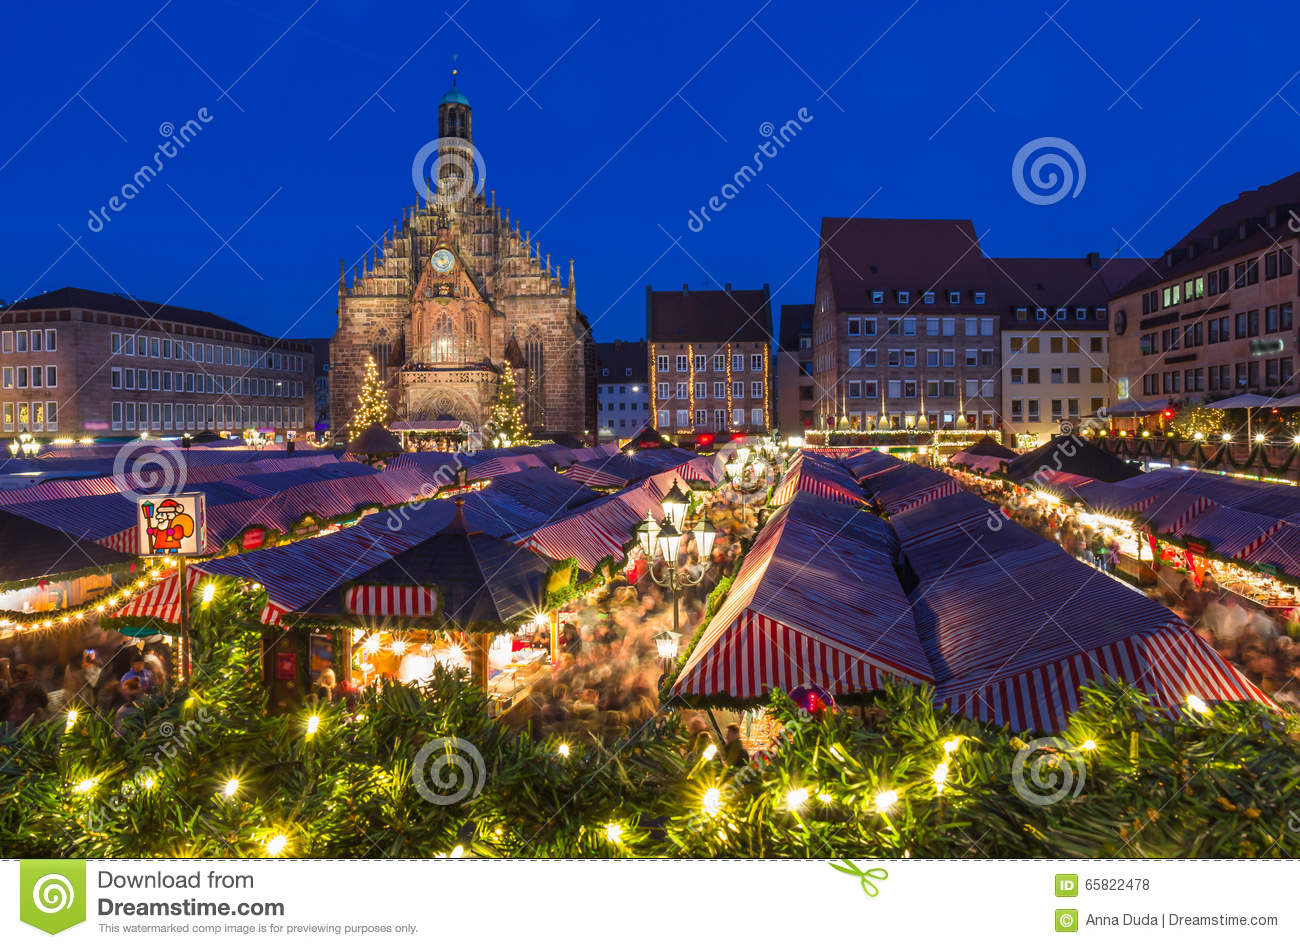 Nuremberg-Germany-Christmas Market-evening cityscape